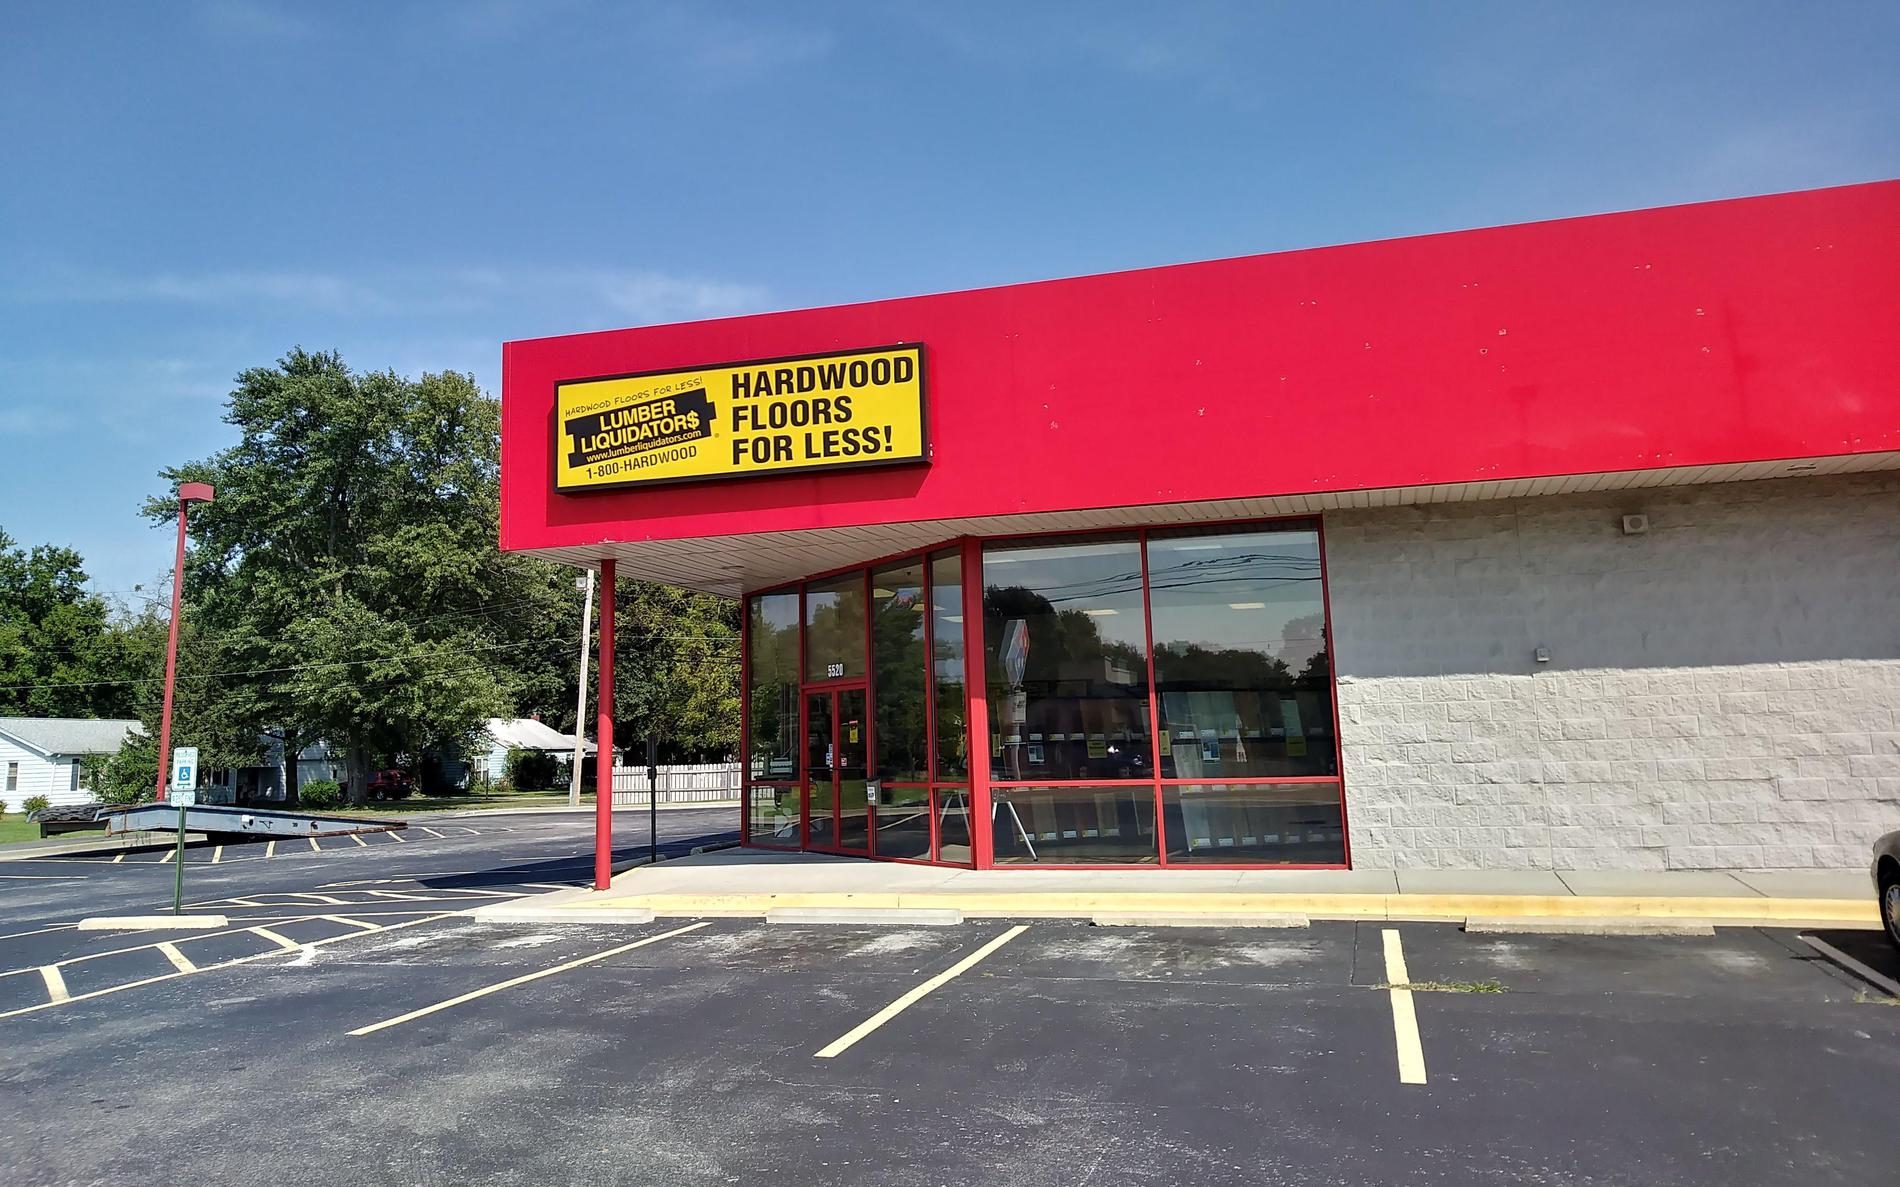 LL Flooring #1240 Fairview Heights | 5520 North Illinois St. | Storefront